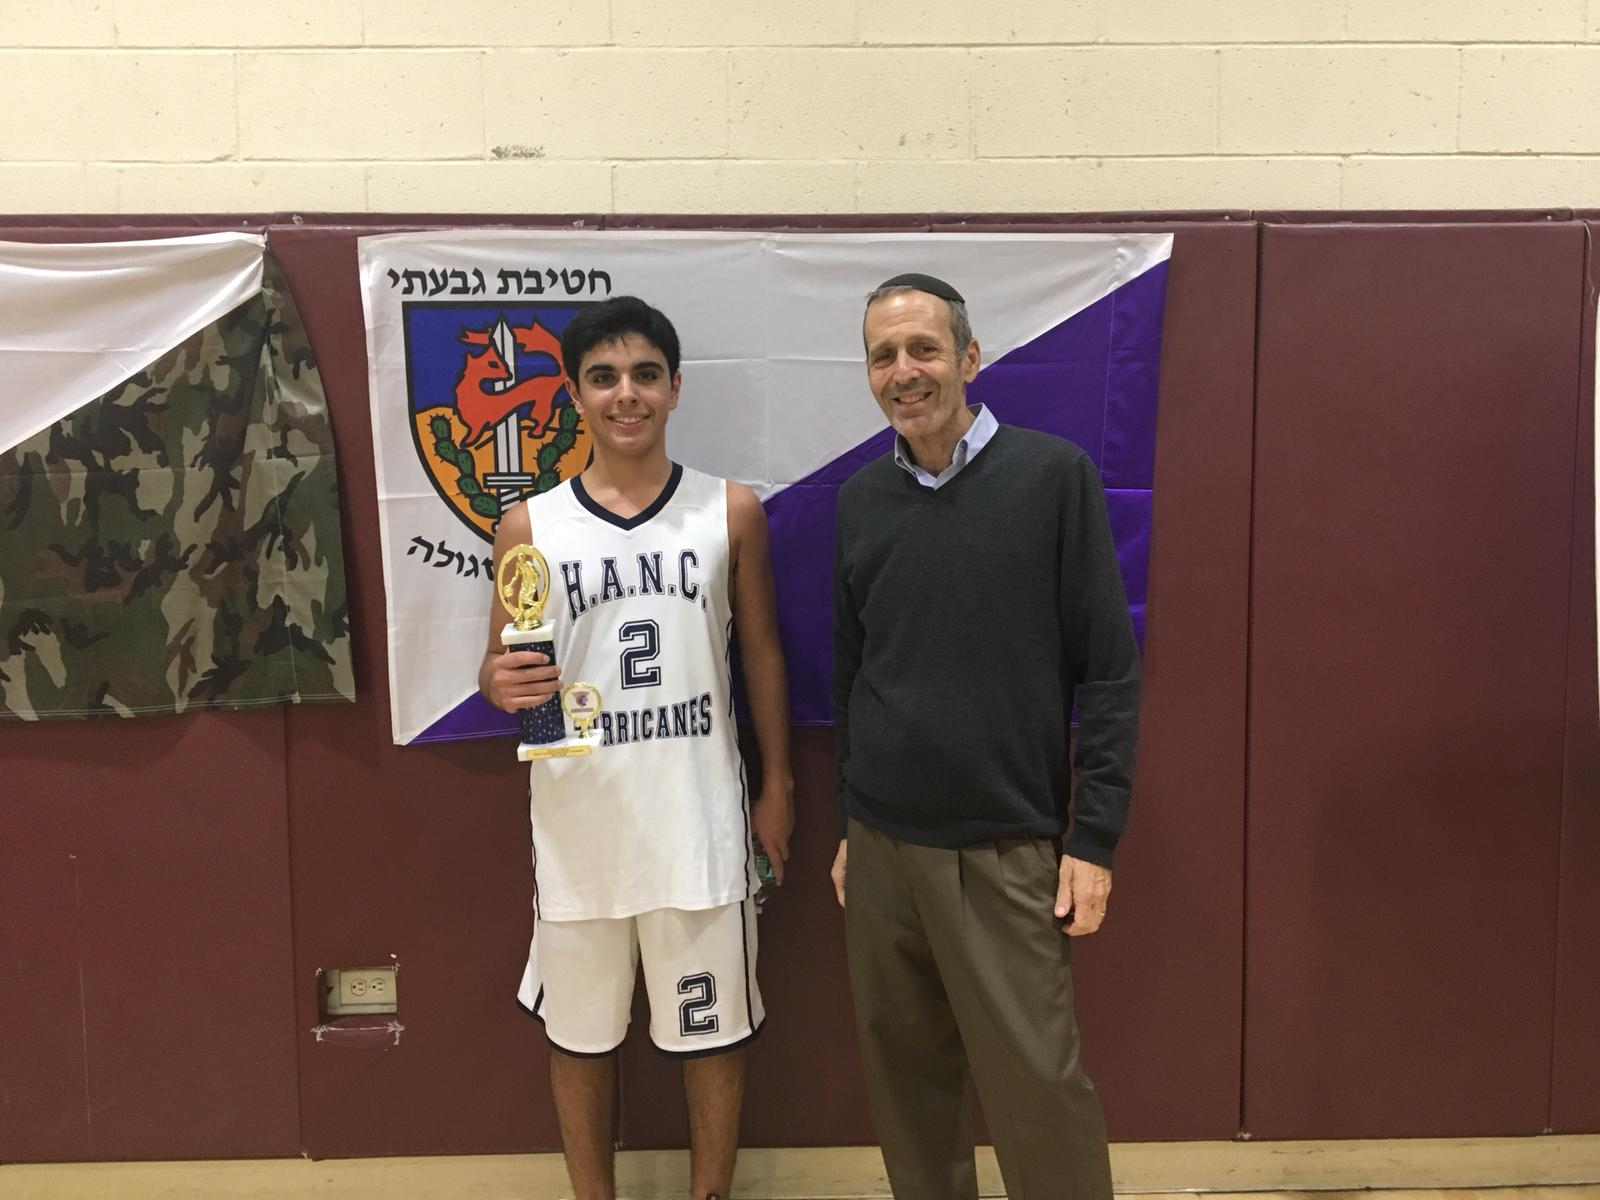 Judah Rhine with the 2018 Basketball champ from the Hebrew Academy - Nassau County